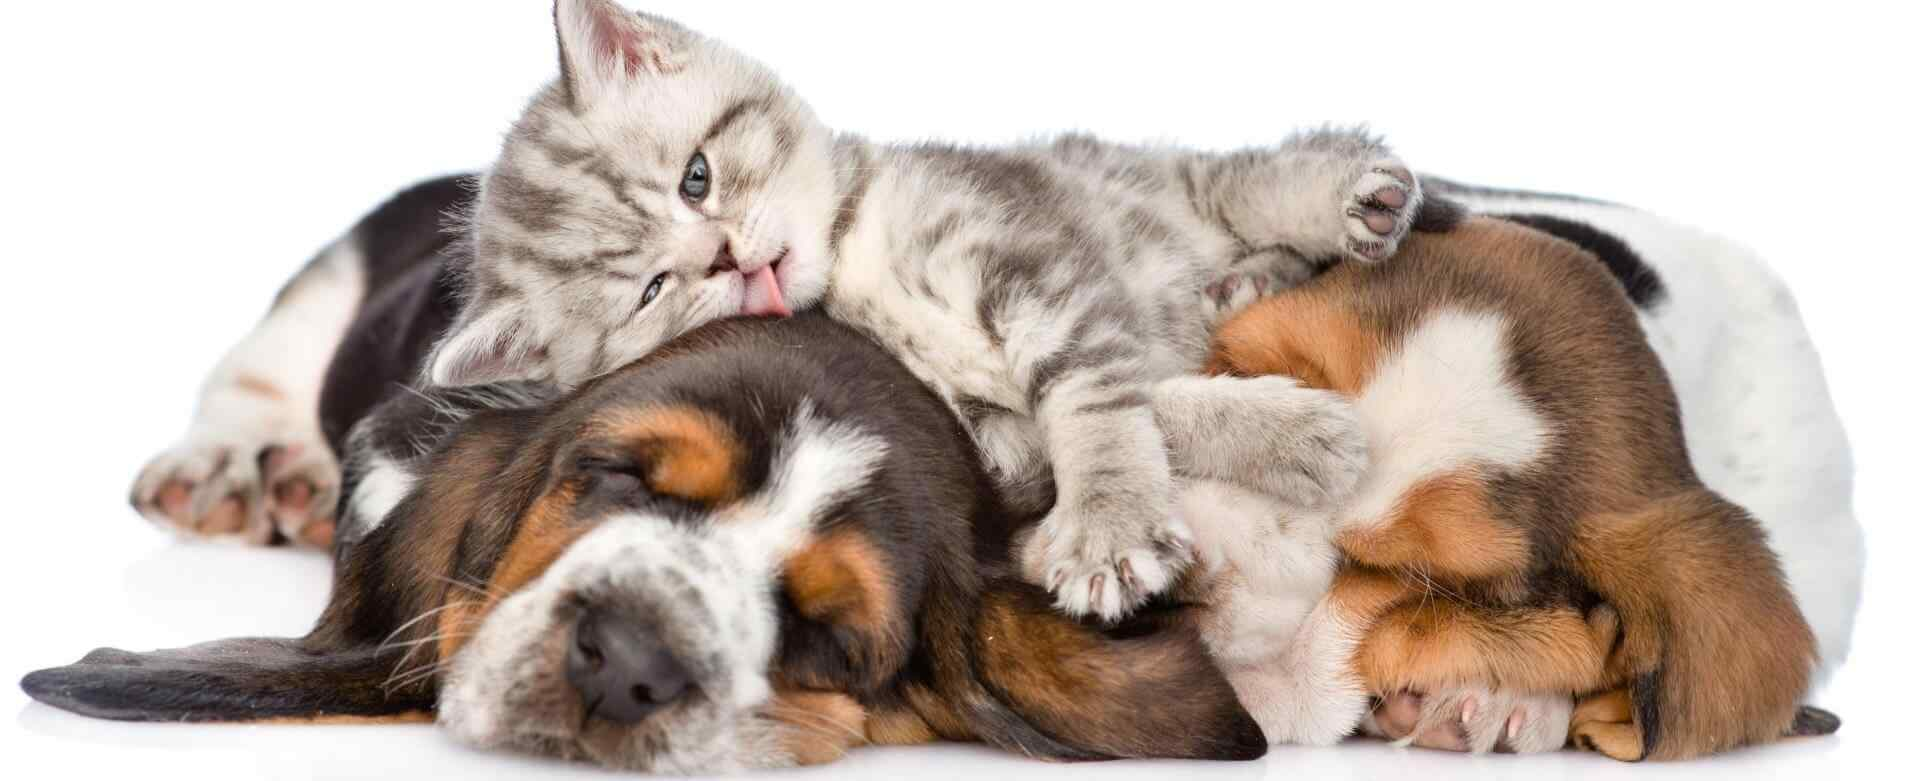 Funny kitten lying on the puppies basset hound and licks them. isolated